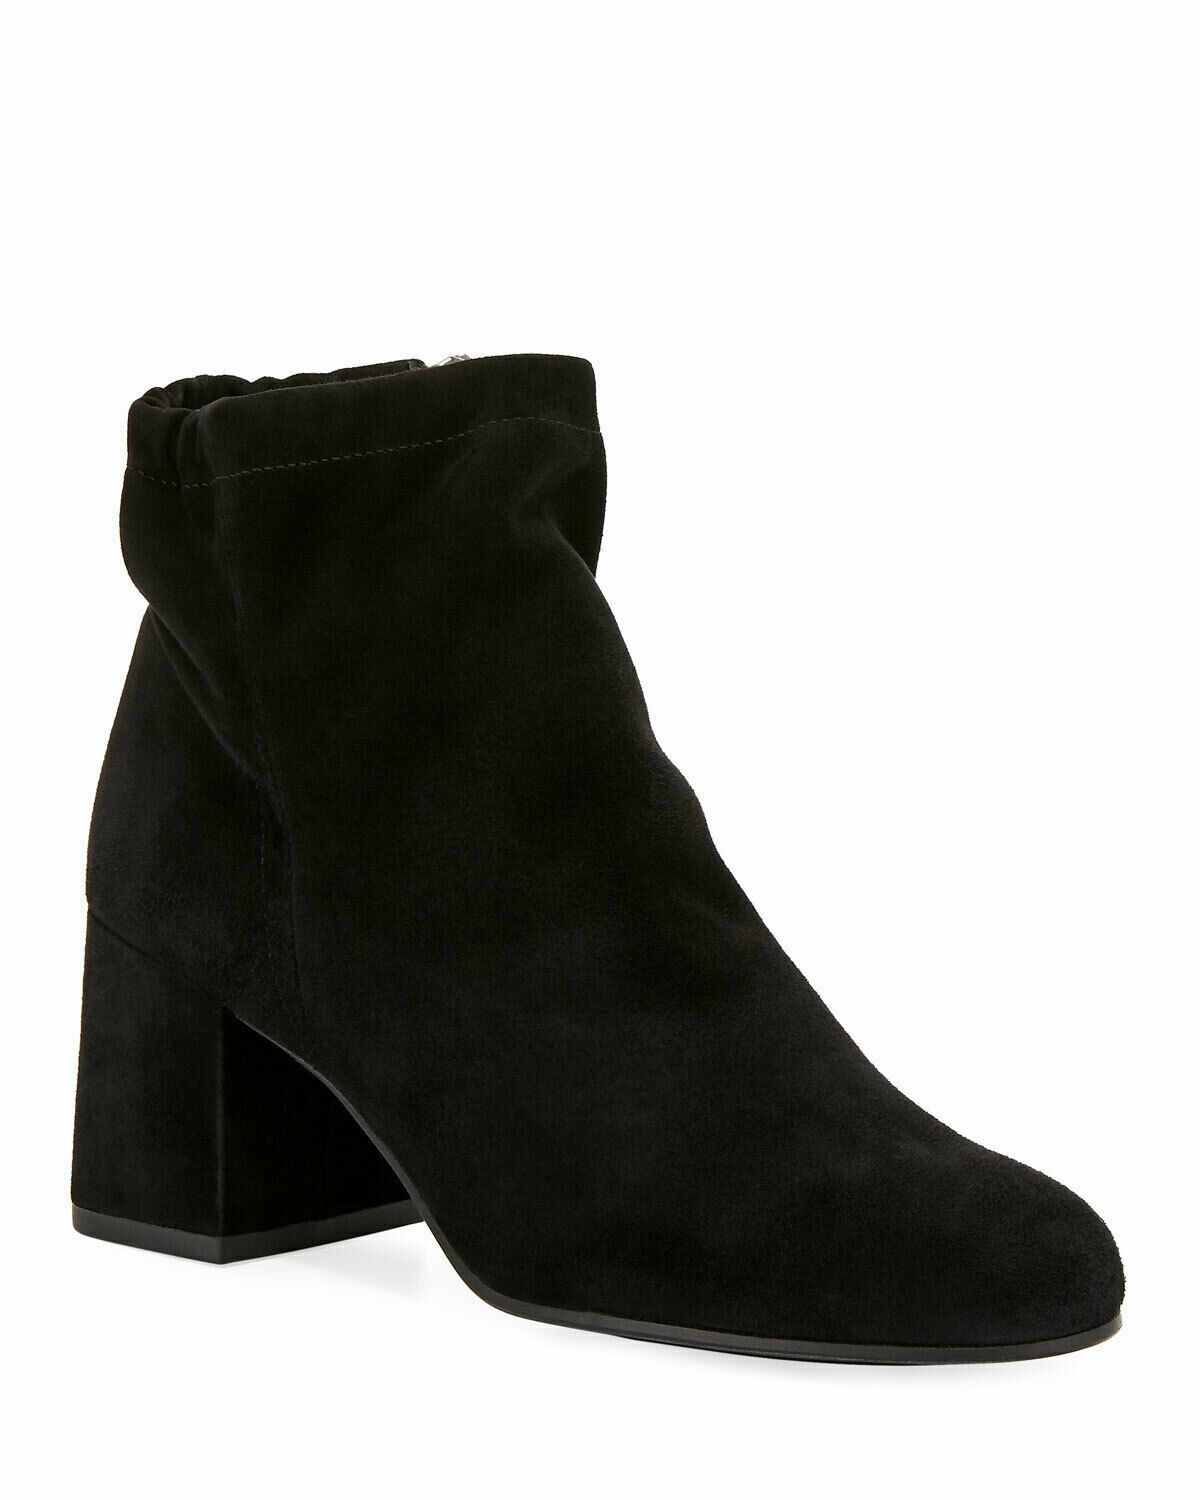 NIB Eileen Fisher Women's Hollis Black Suede Block Heel Ankle Zip Booties $265 9